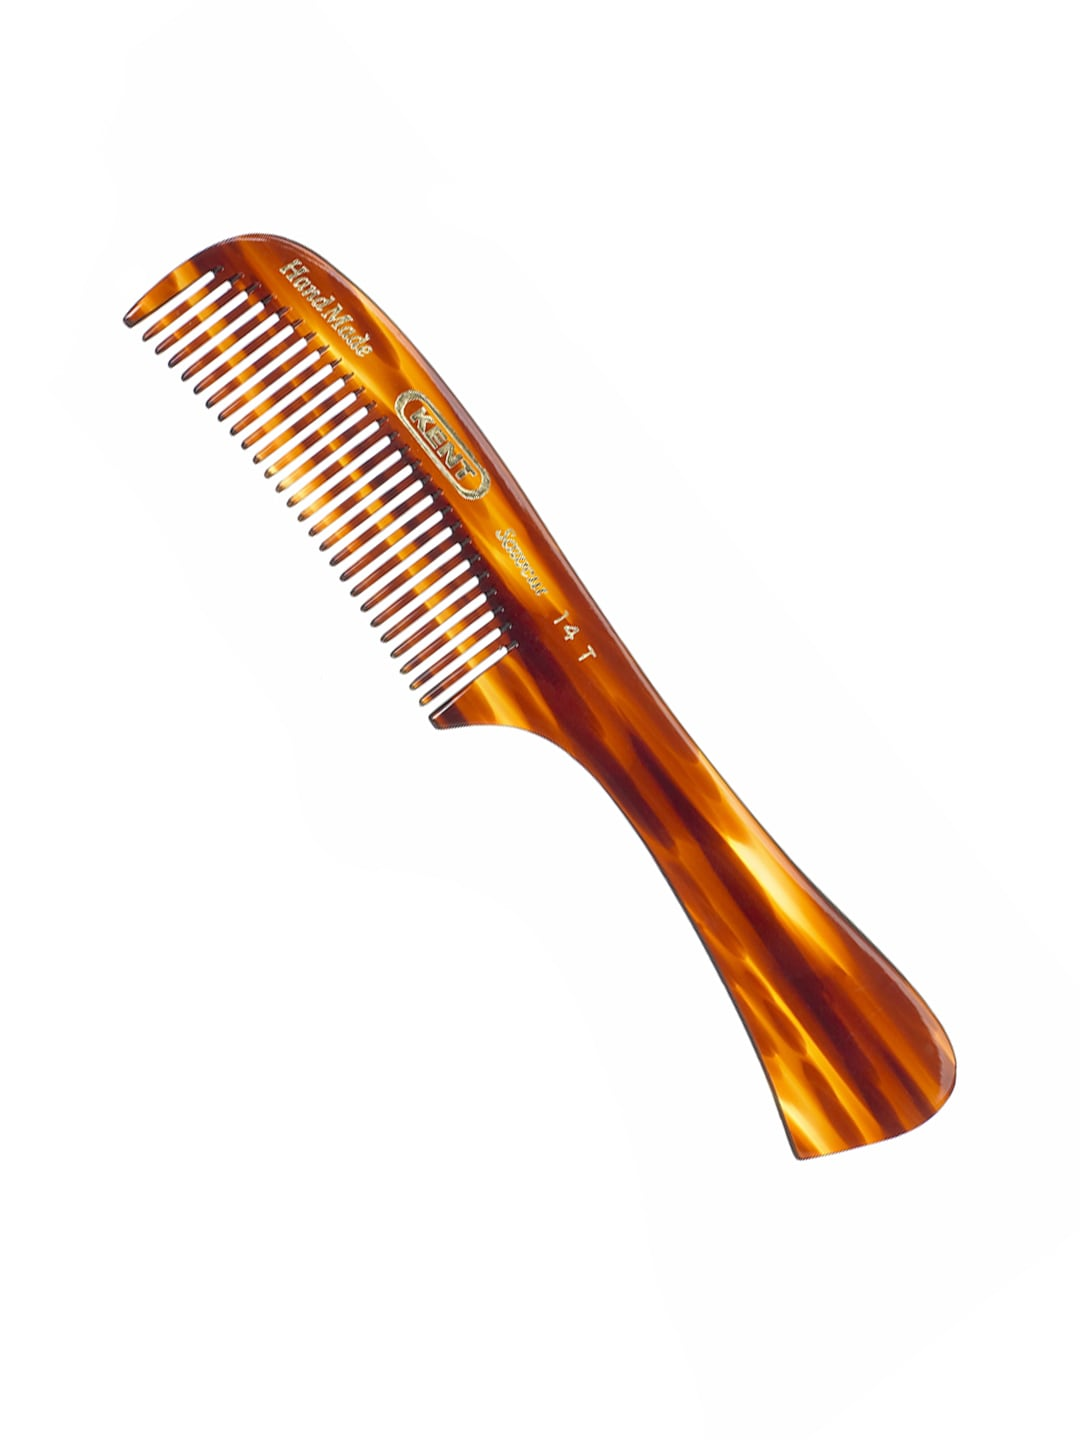 Kent Unisex Brown Handcrafted Comb 14T image